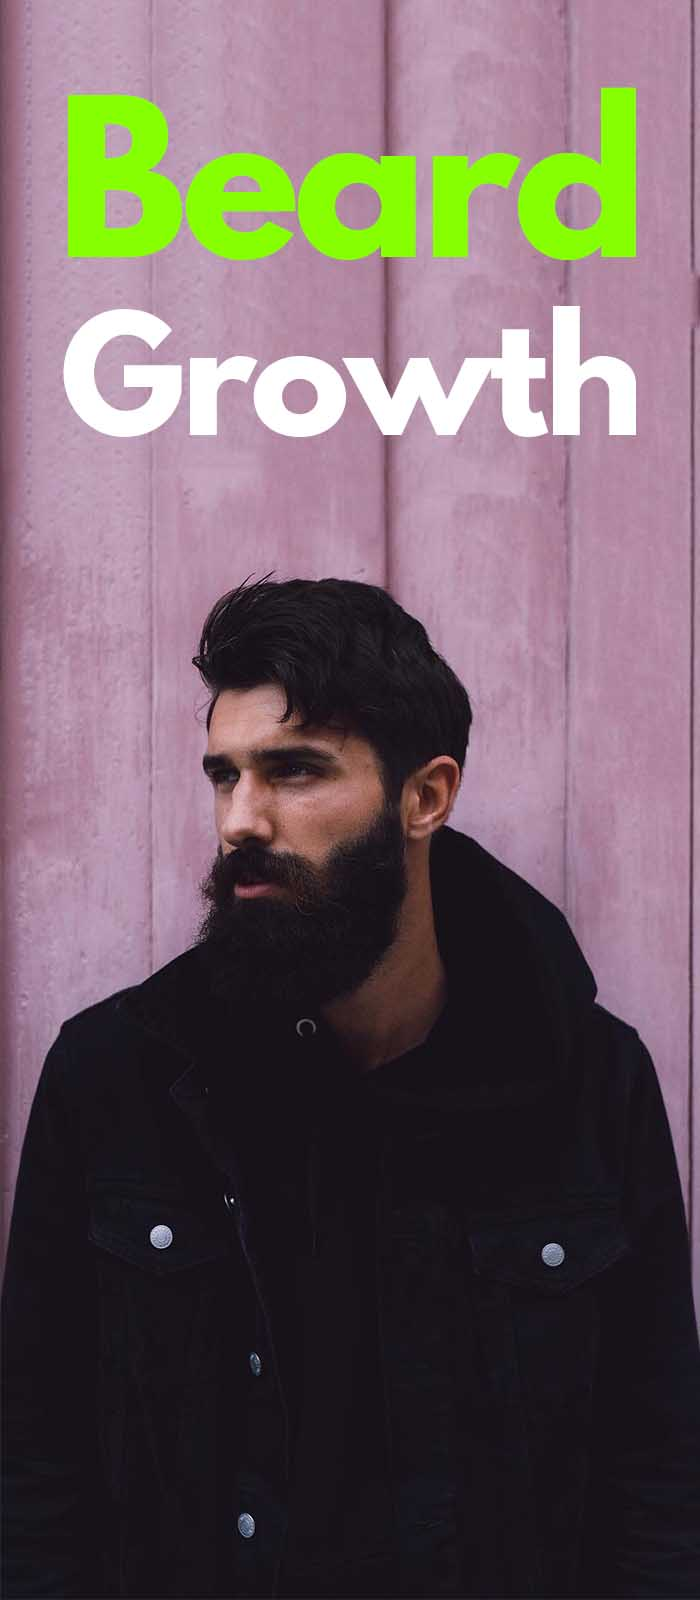 Science About Beard Growth!